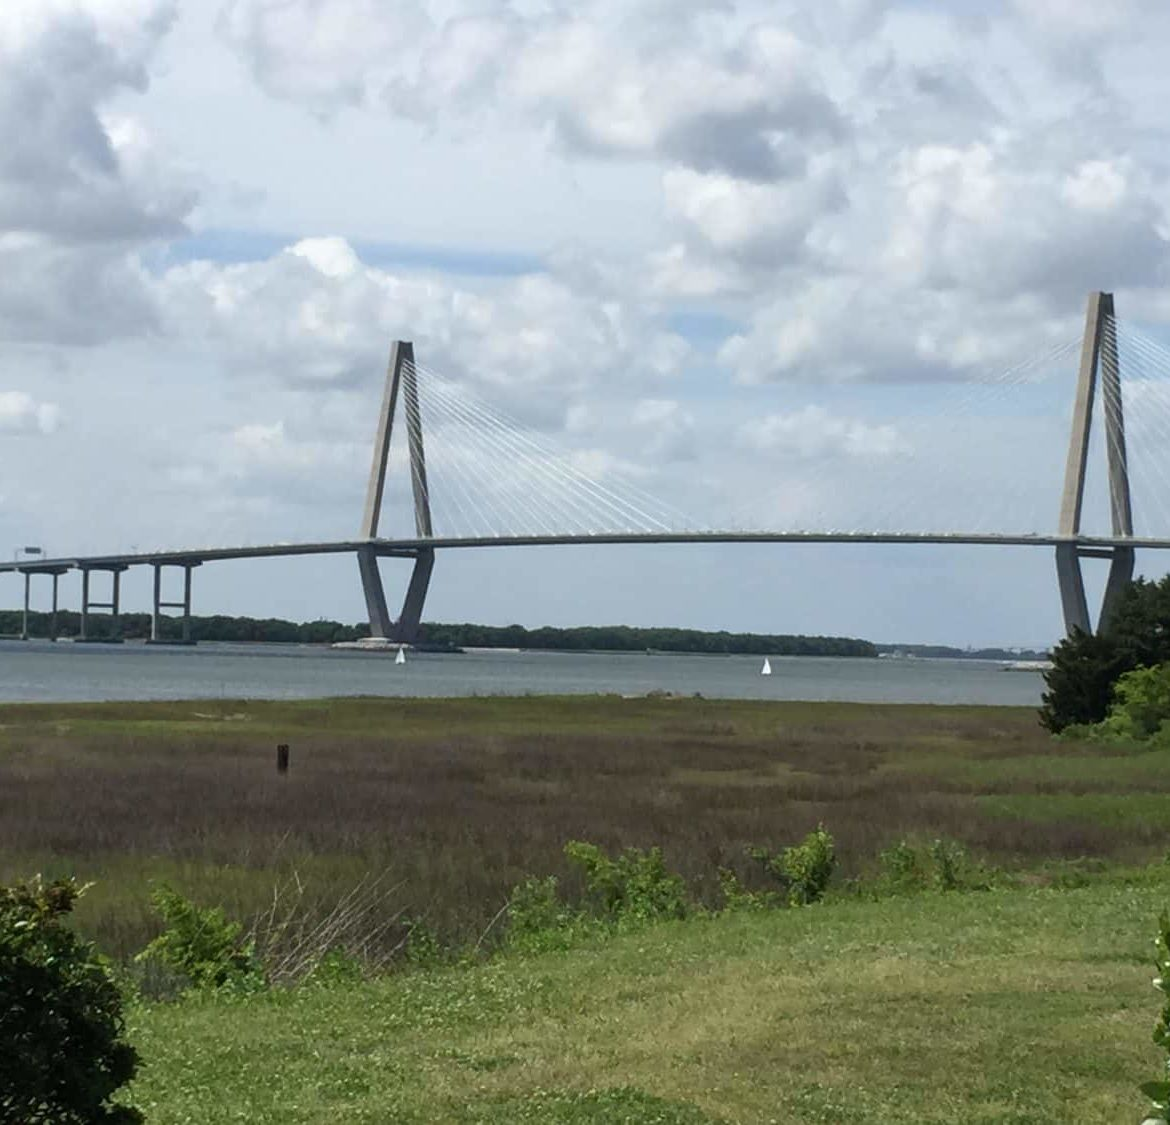 Going To Travel James Island Try A Popular Restaurant Called Roadside SeafoodNow Part Of The Flight Family Kids Birthday Parties Charleston SC